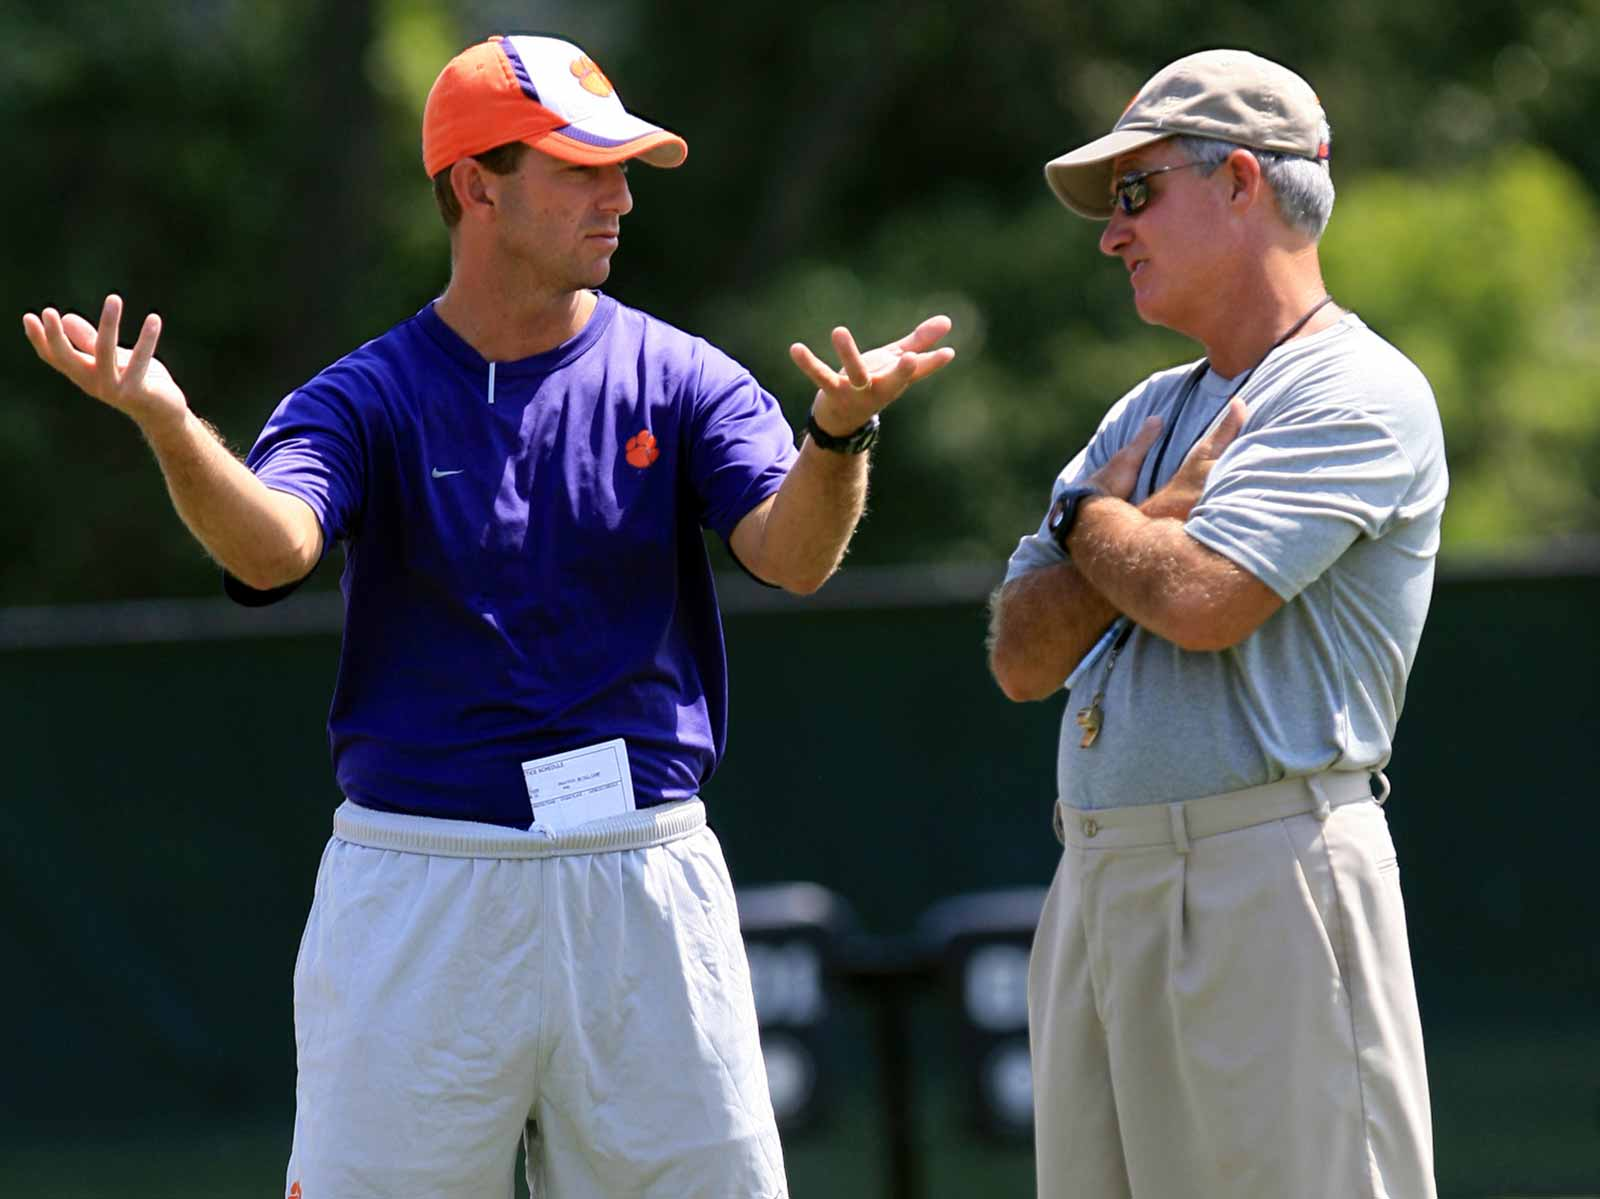 Dabo Swinney and Tommy Bowden at Clemson practice